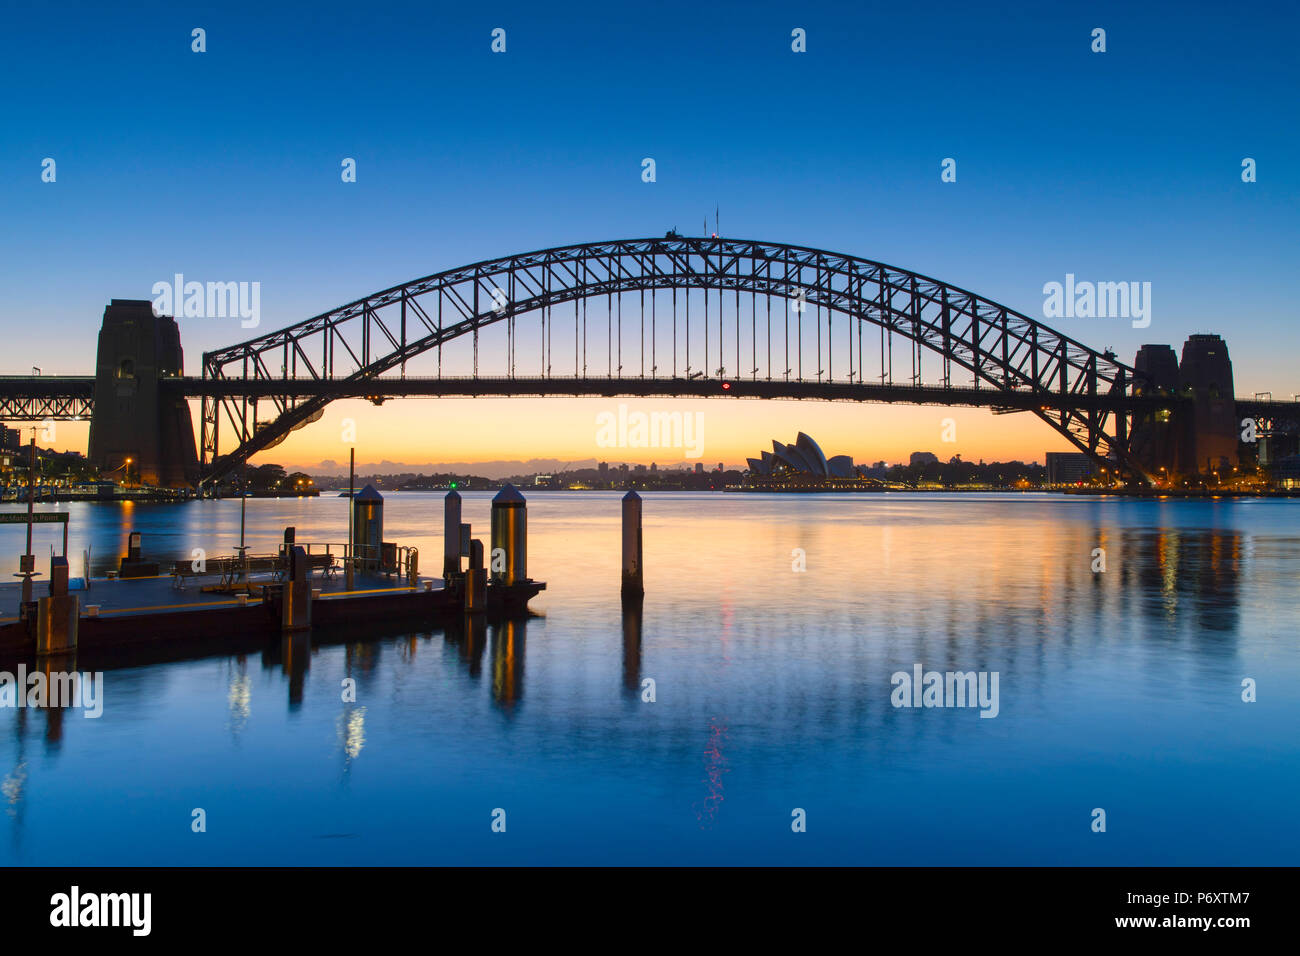 Sydney Harbour Bridge at dawn, Sydney, New South Wales, Australia - Stock Image